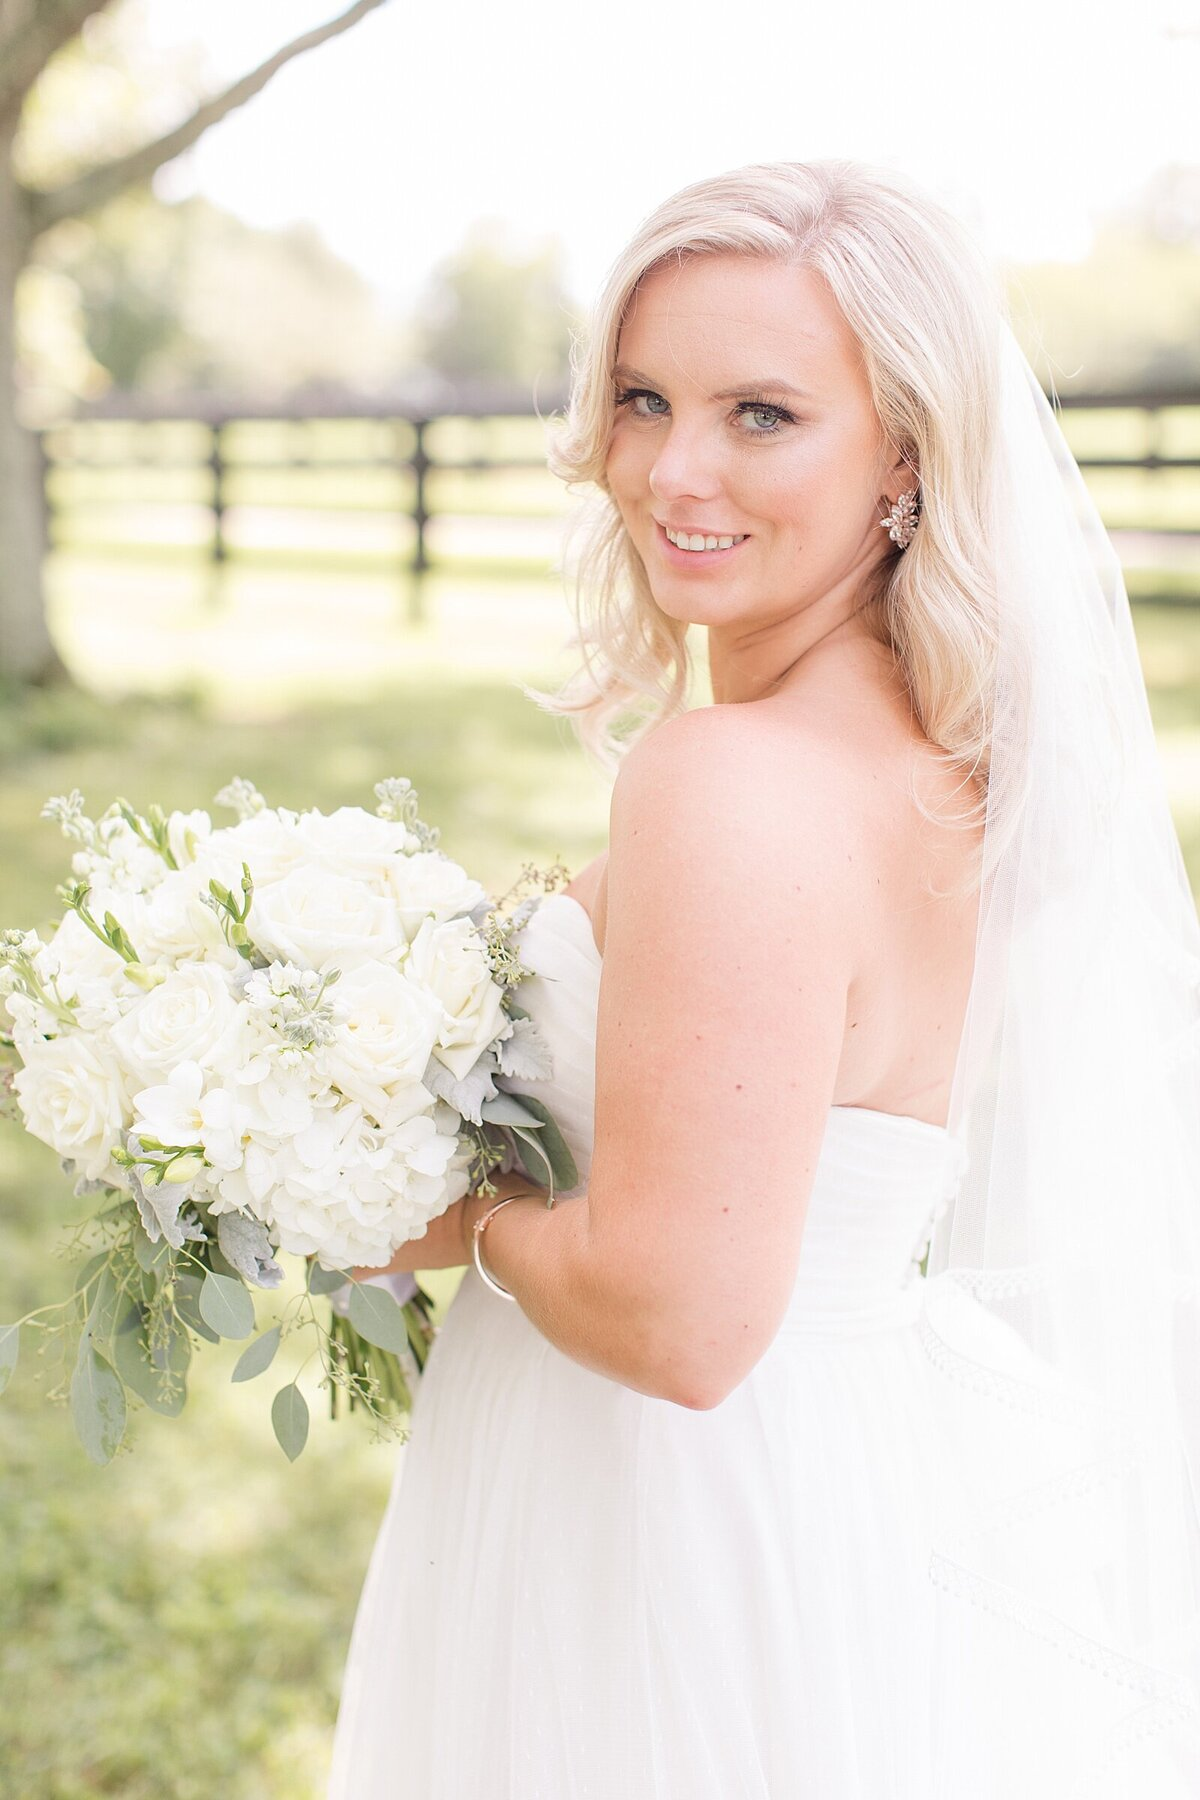 Kara Webster Photography | Mac & Maggie | Bradshaw-Duncan House Louisville, KY Wedding Photographer_0044